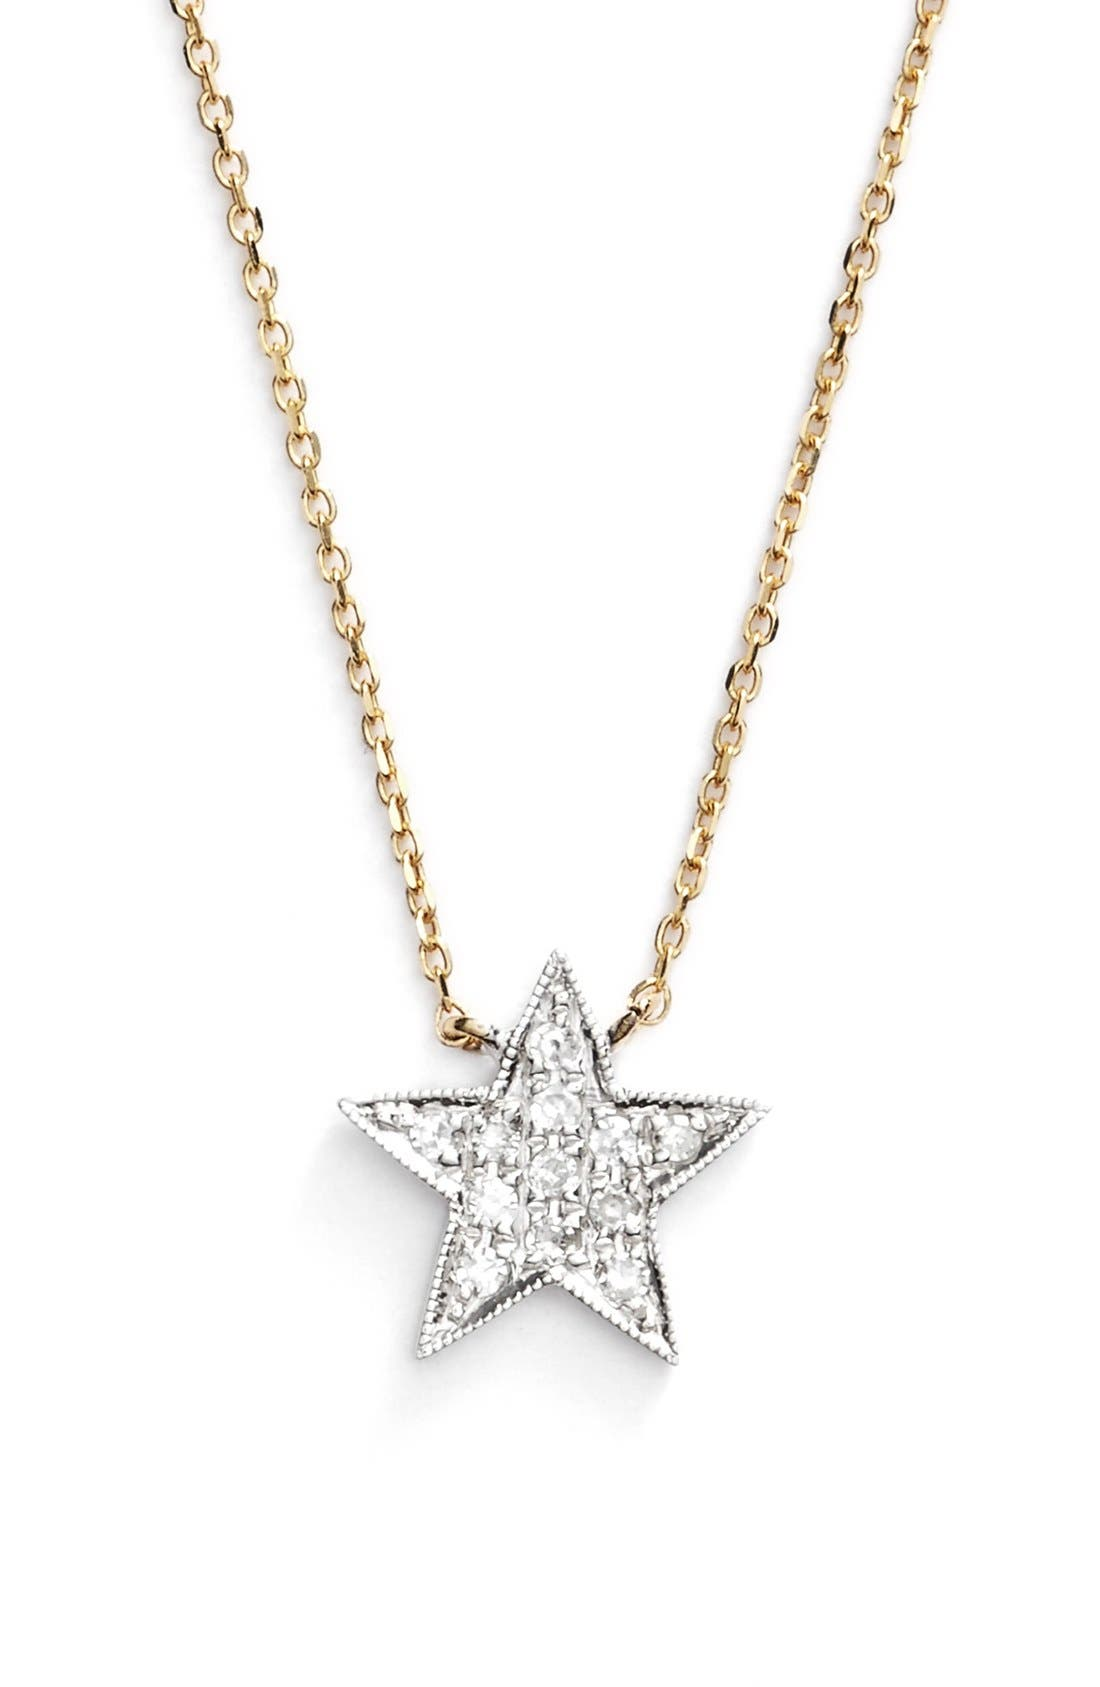 Dana Rebecca Designs 'Julianne Himiko' Diamond Star Pendant Necklace